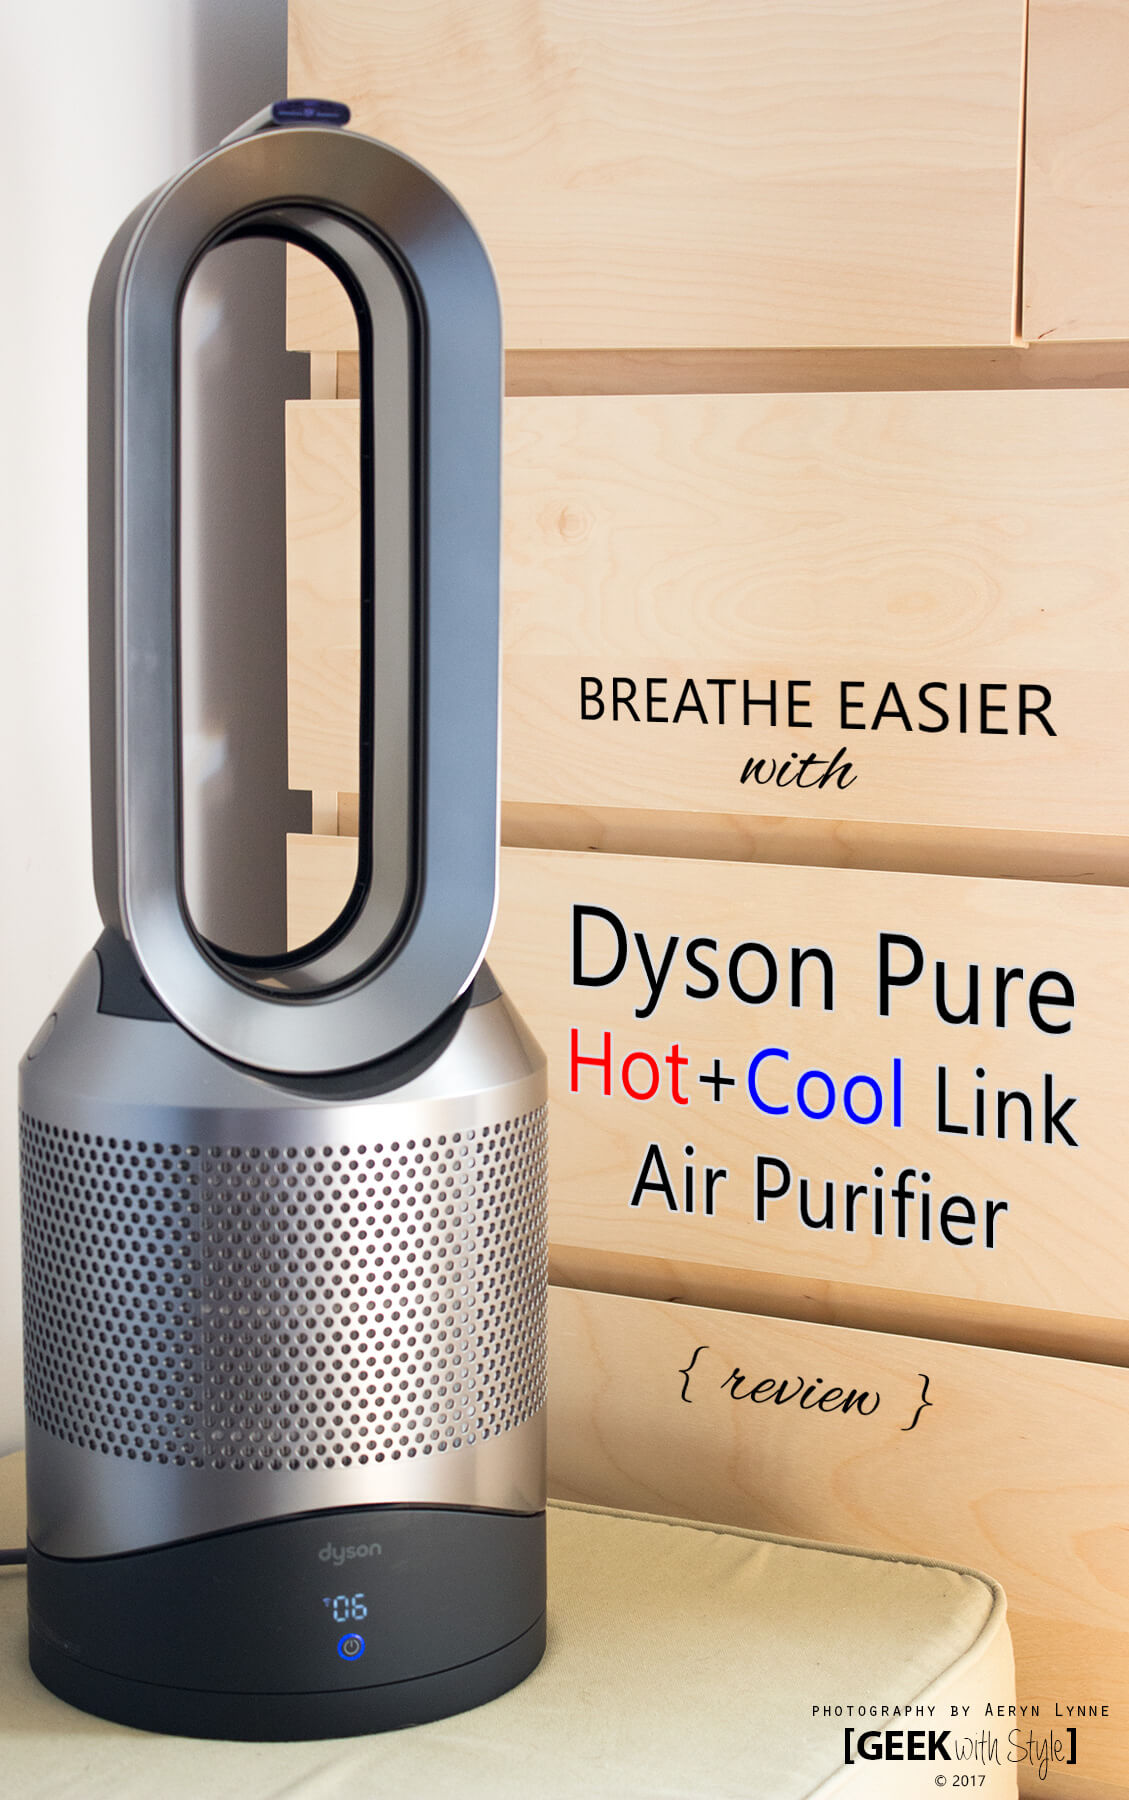 Dyson Pure HotCool Link Air Purifier PIN 1 | Geek Life: Augmenting Reality